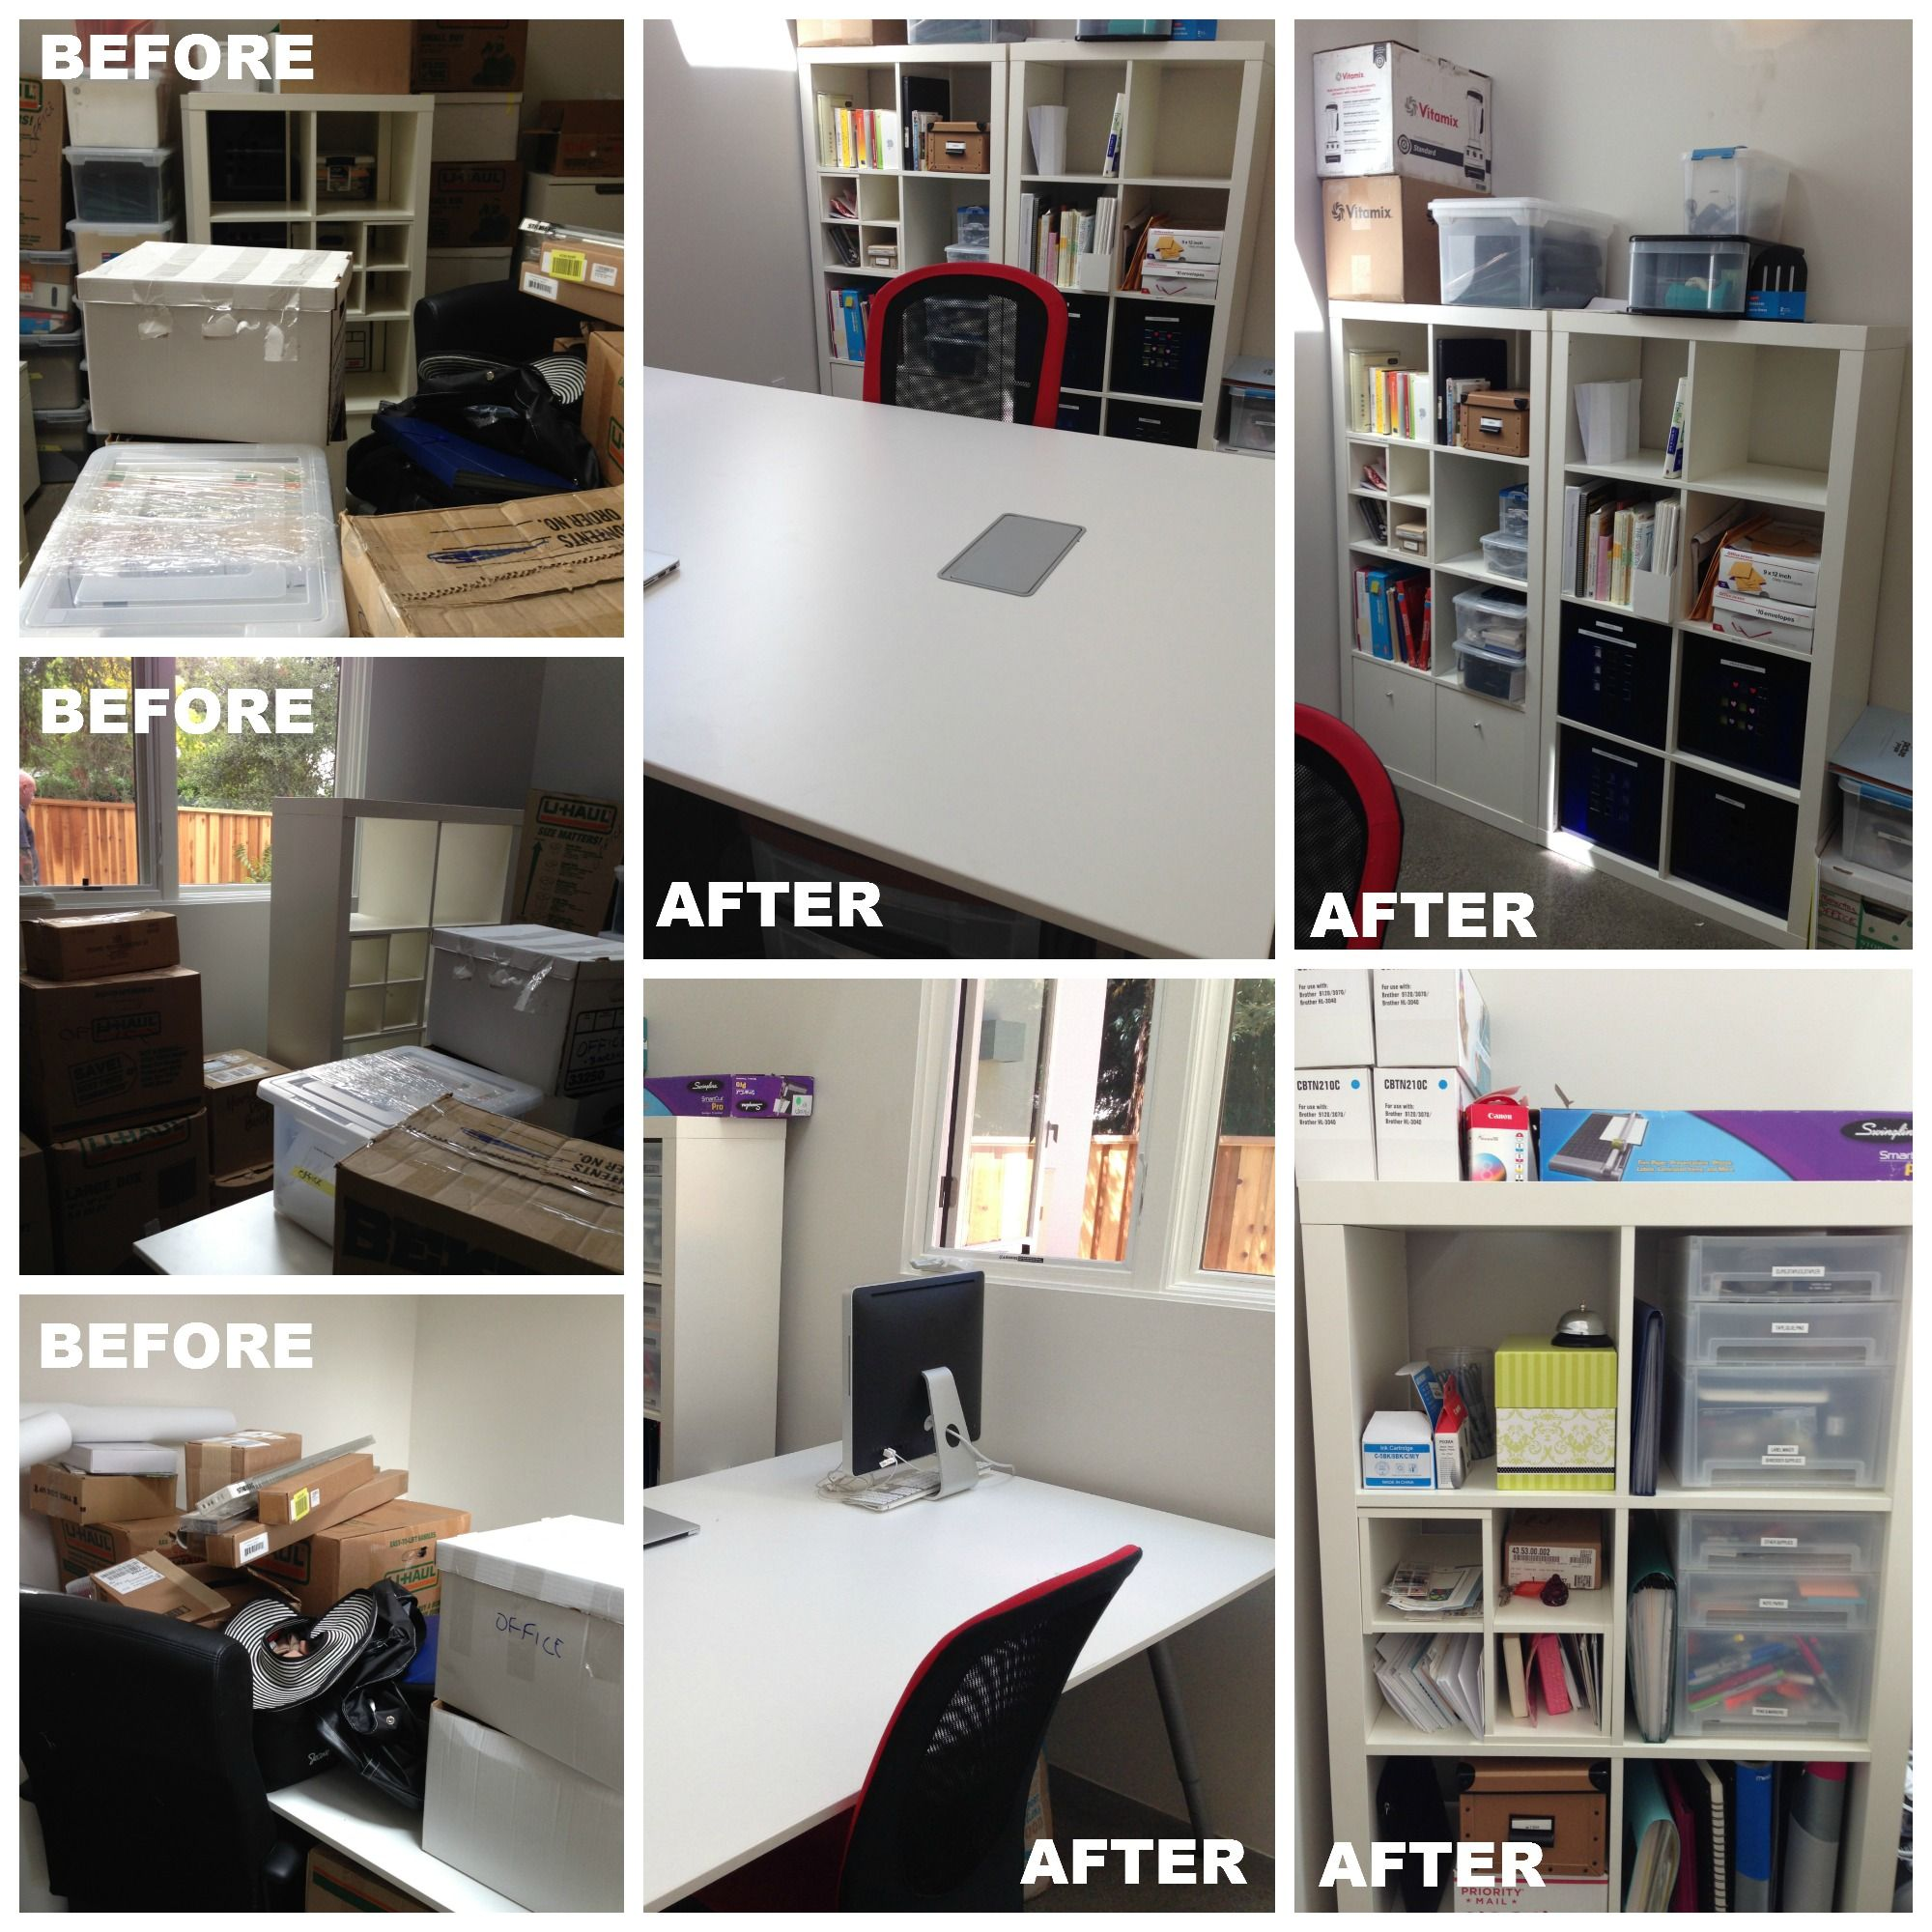 The unpacked boxes sat for days after the move. The home office needed to be unpacked and made functional fast. The end result is a transformation.